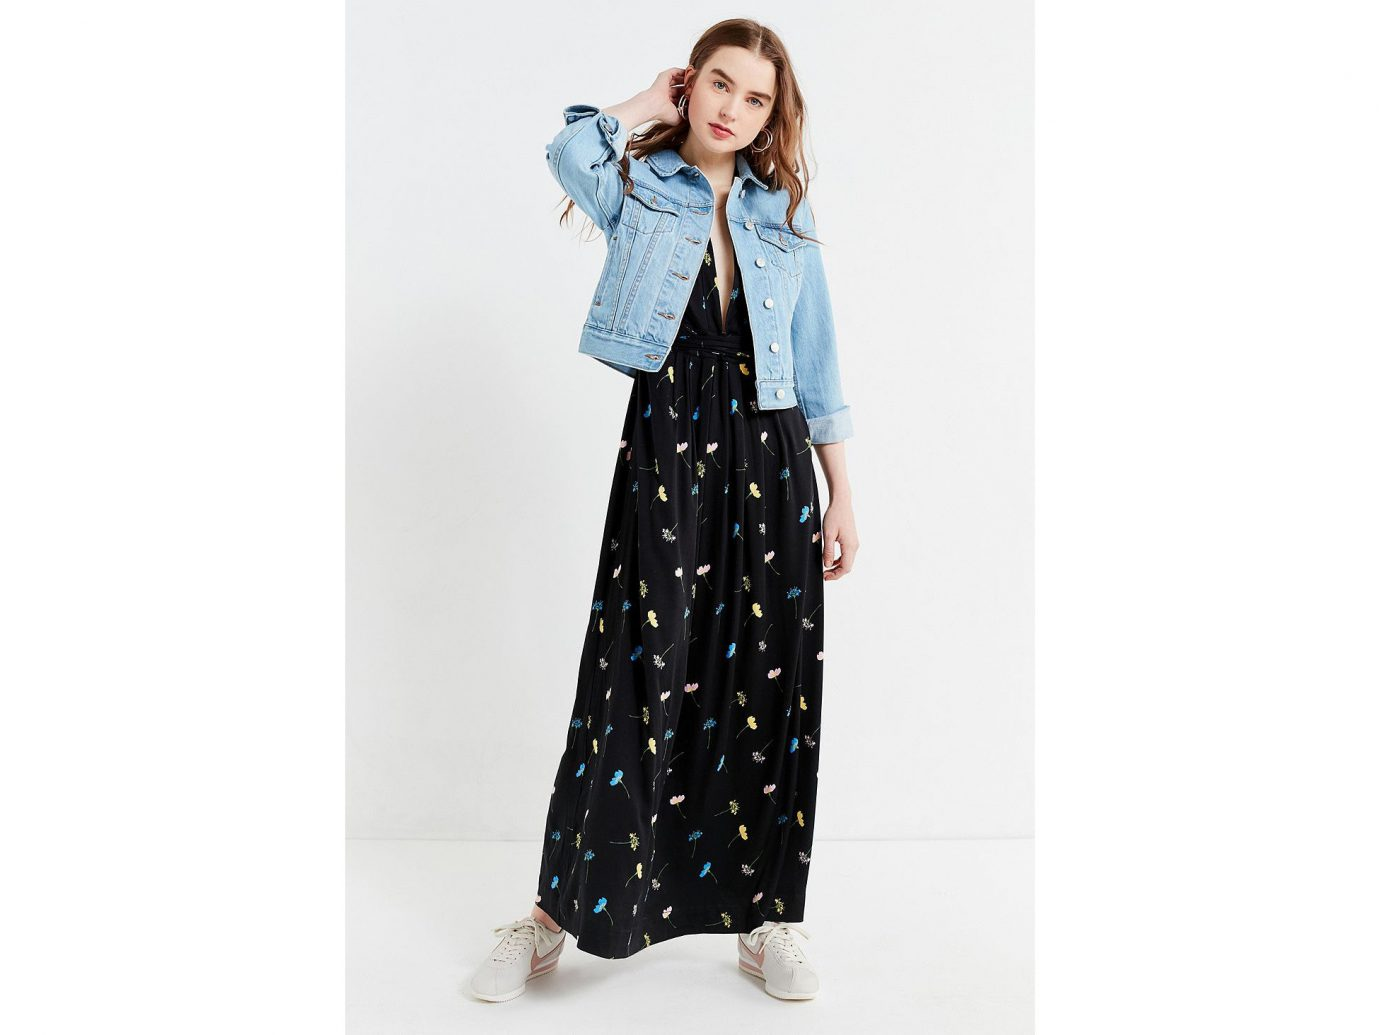 Style + Design Travel Shop person clothing indoor fashion model jeans denim day dress fashion pattern dress posing trousers one piece garment